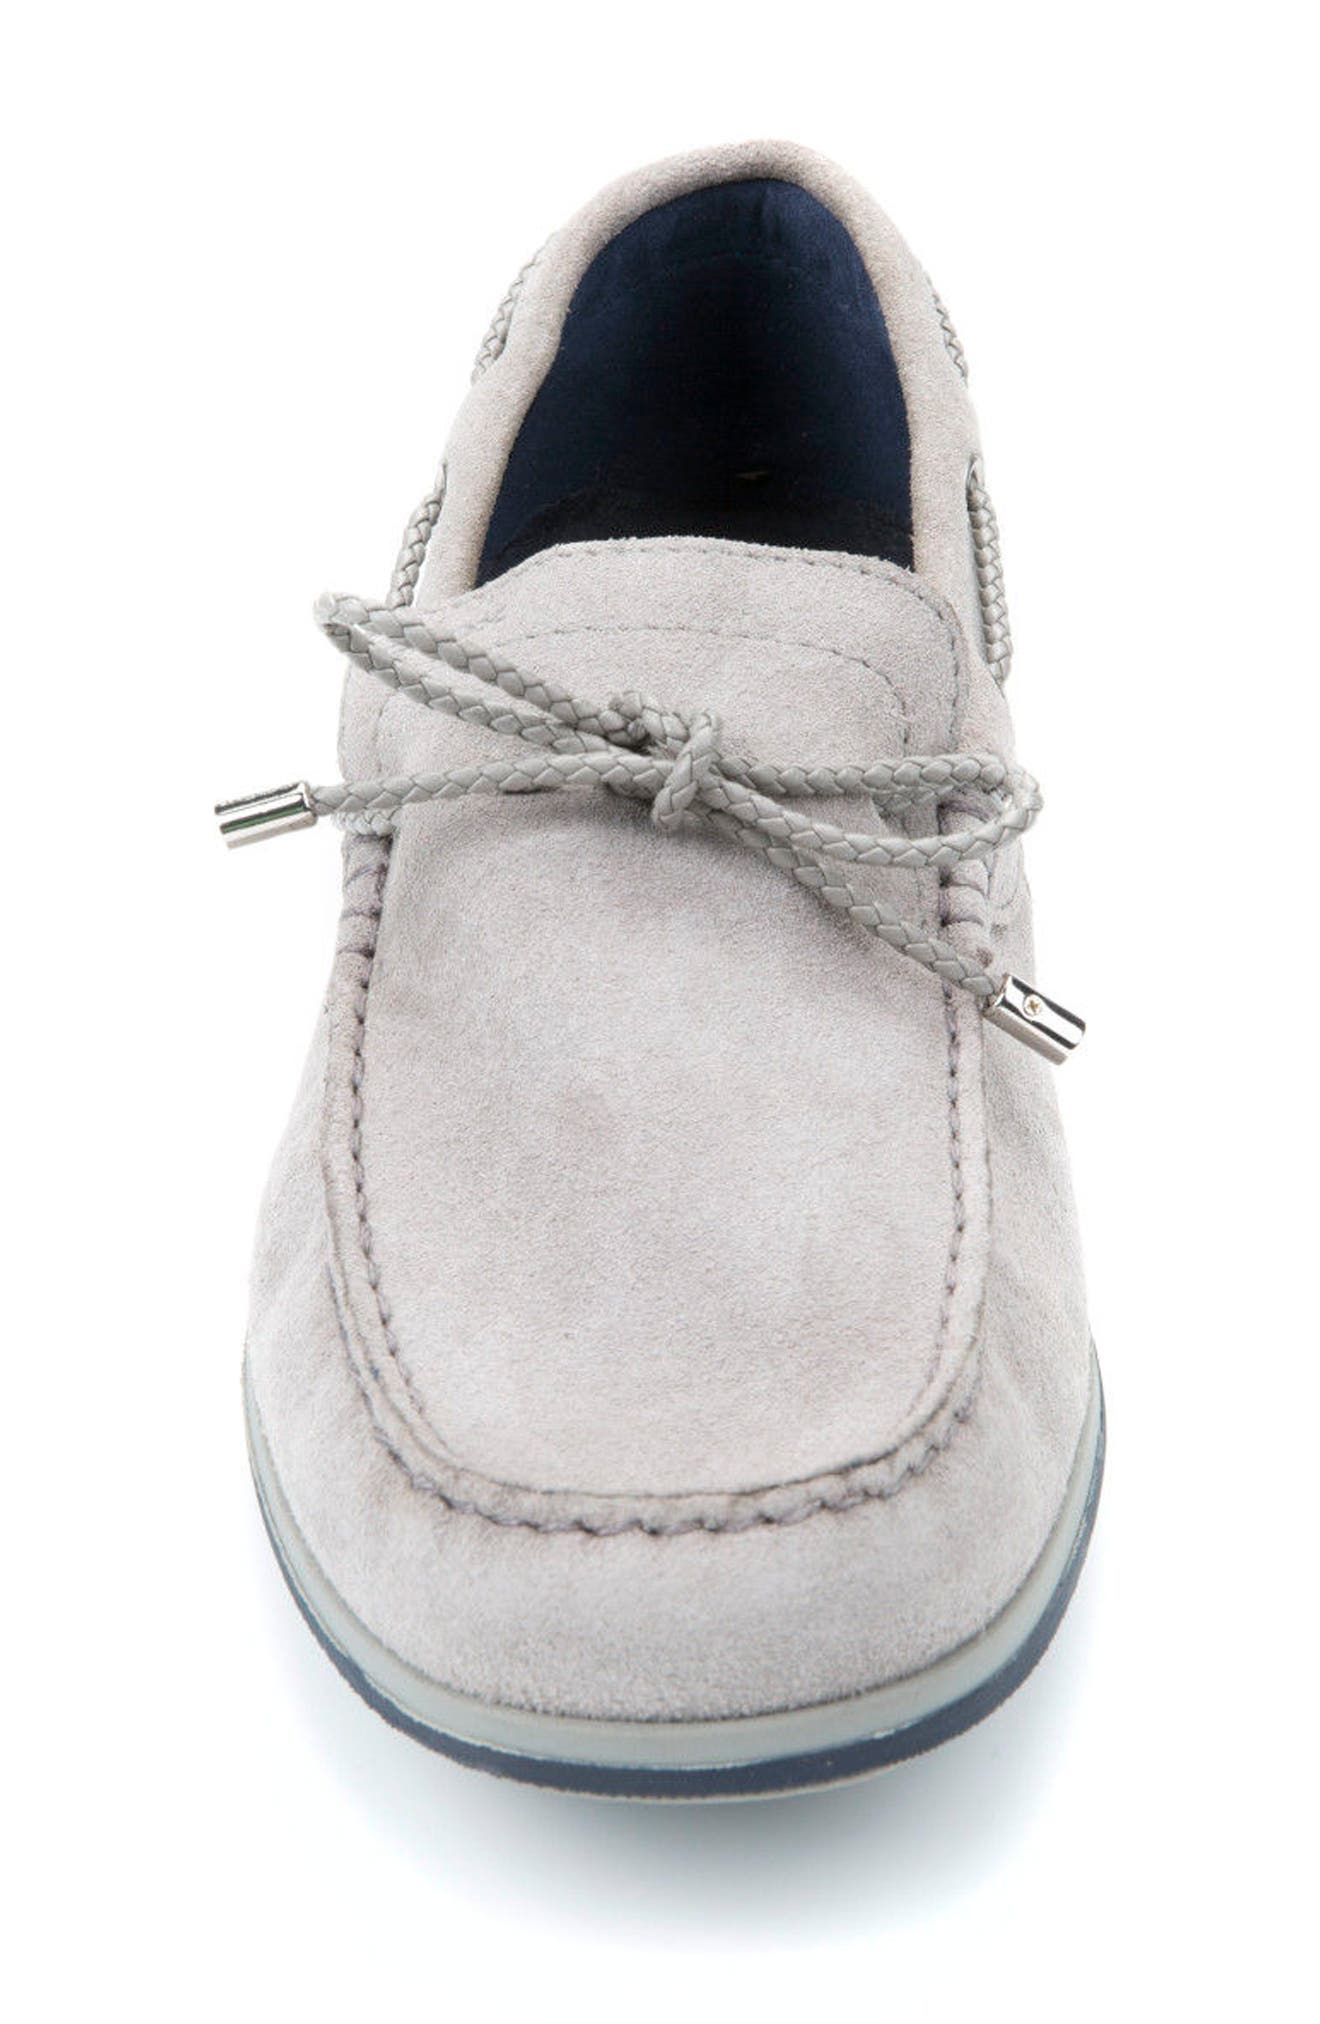 Mirvin 2 Boat Shoe,                             Alternate thumbnail 4, color,                             Stone Suede